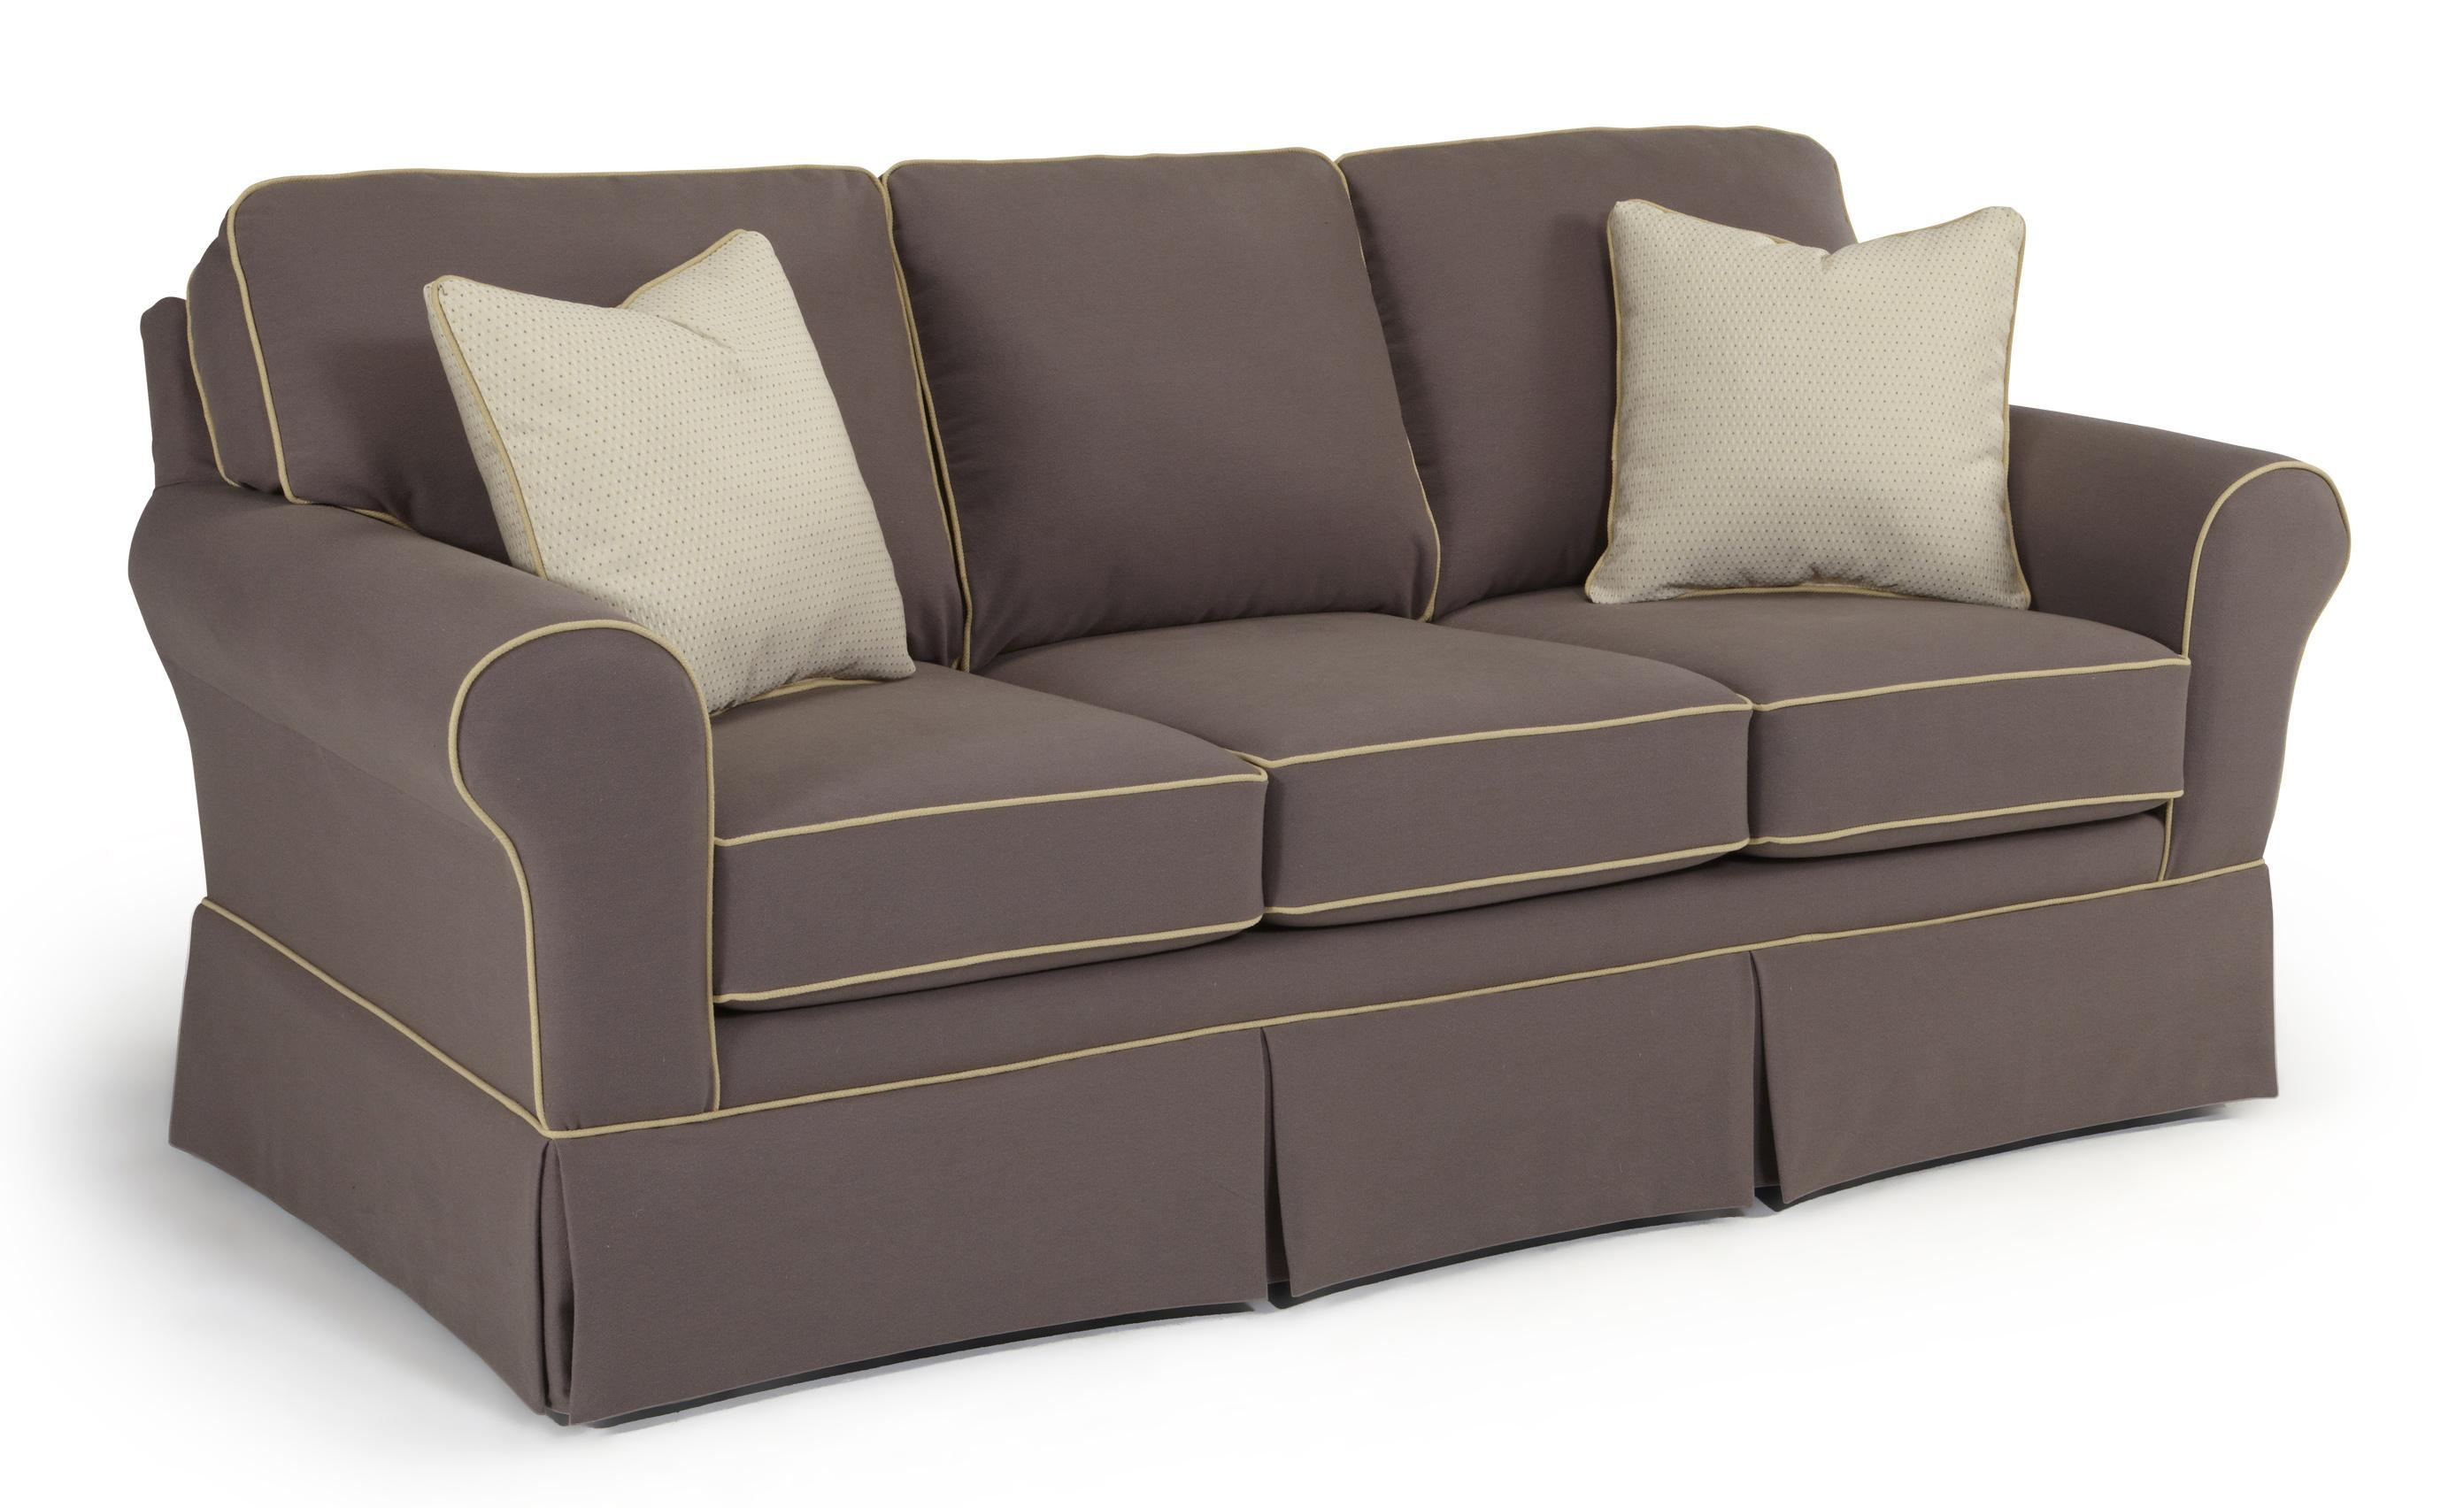 B>Customizable</b> Traditional Sofa With Rolled Arms And Skirted For Customized Sofas (Image 1 of 20)